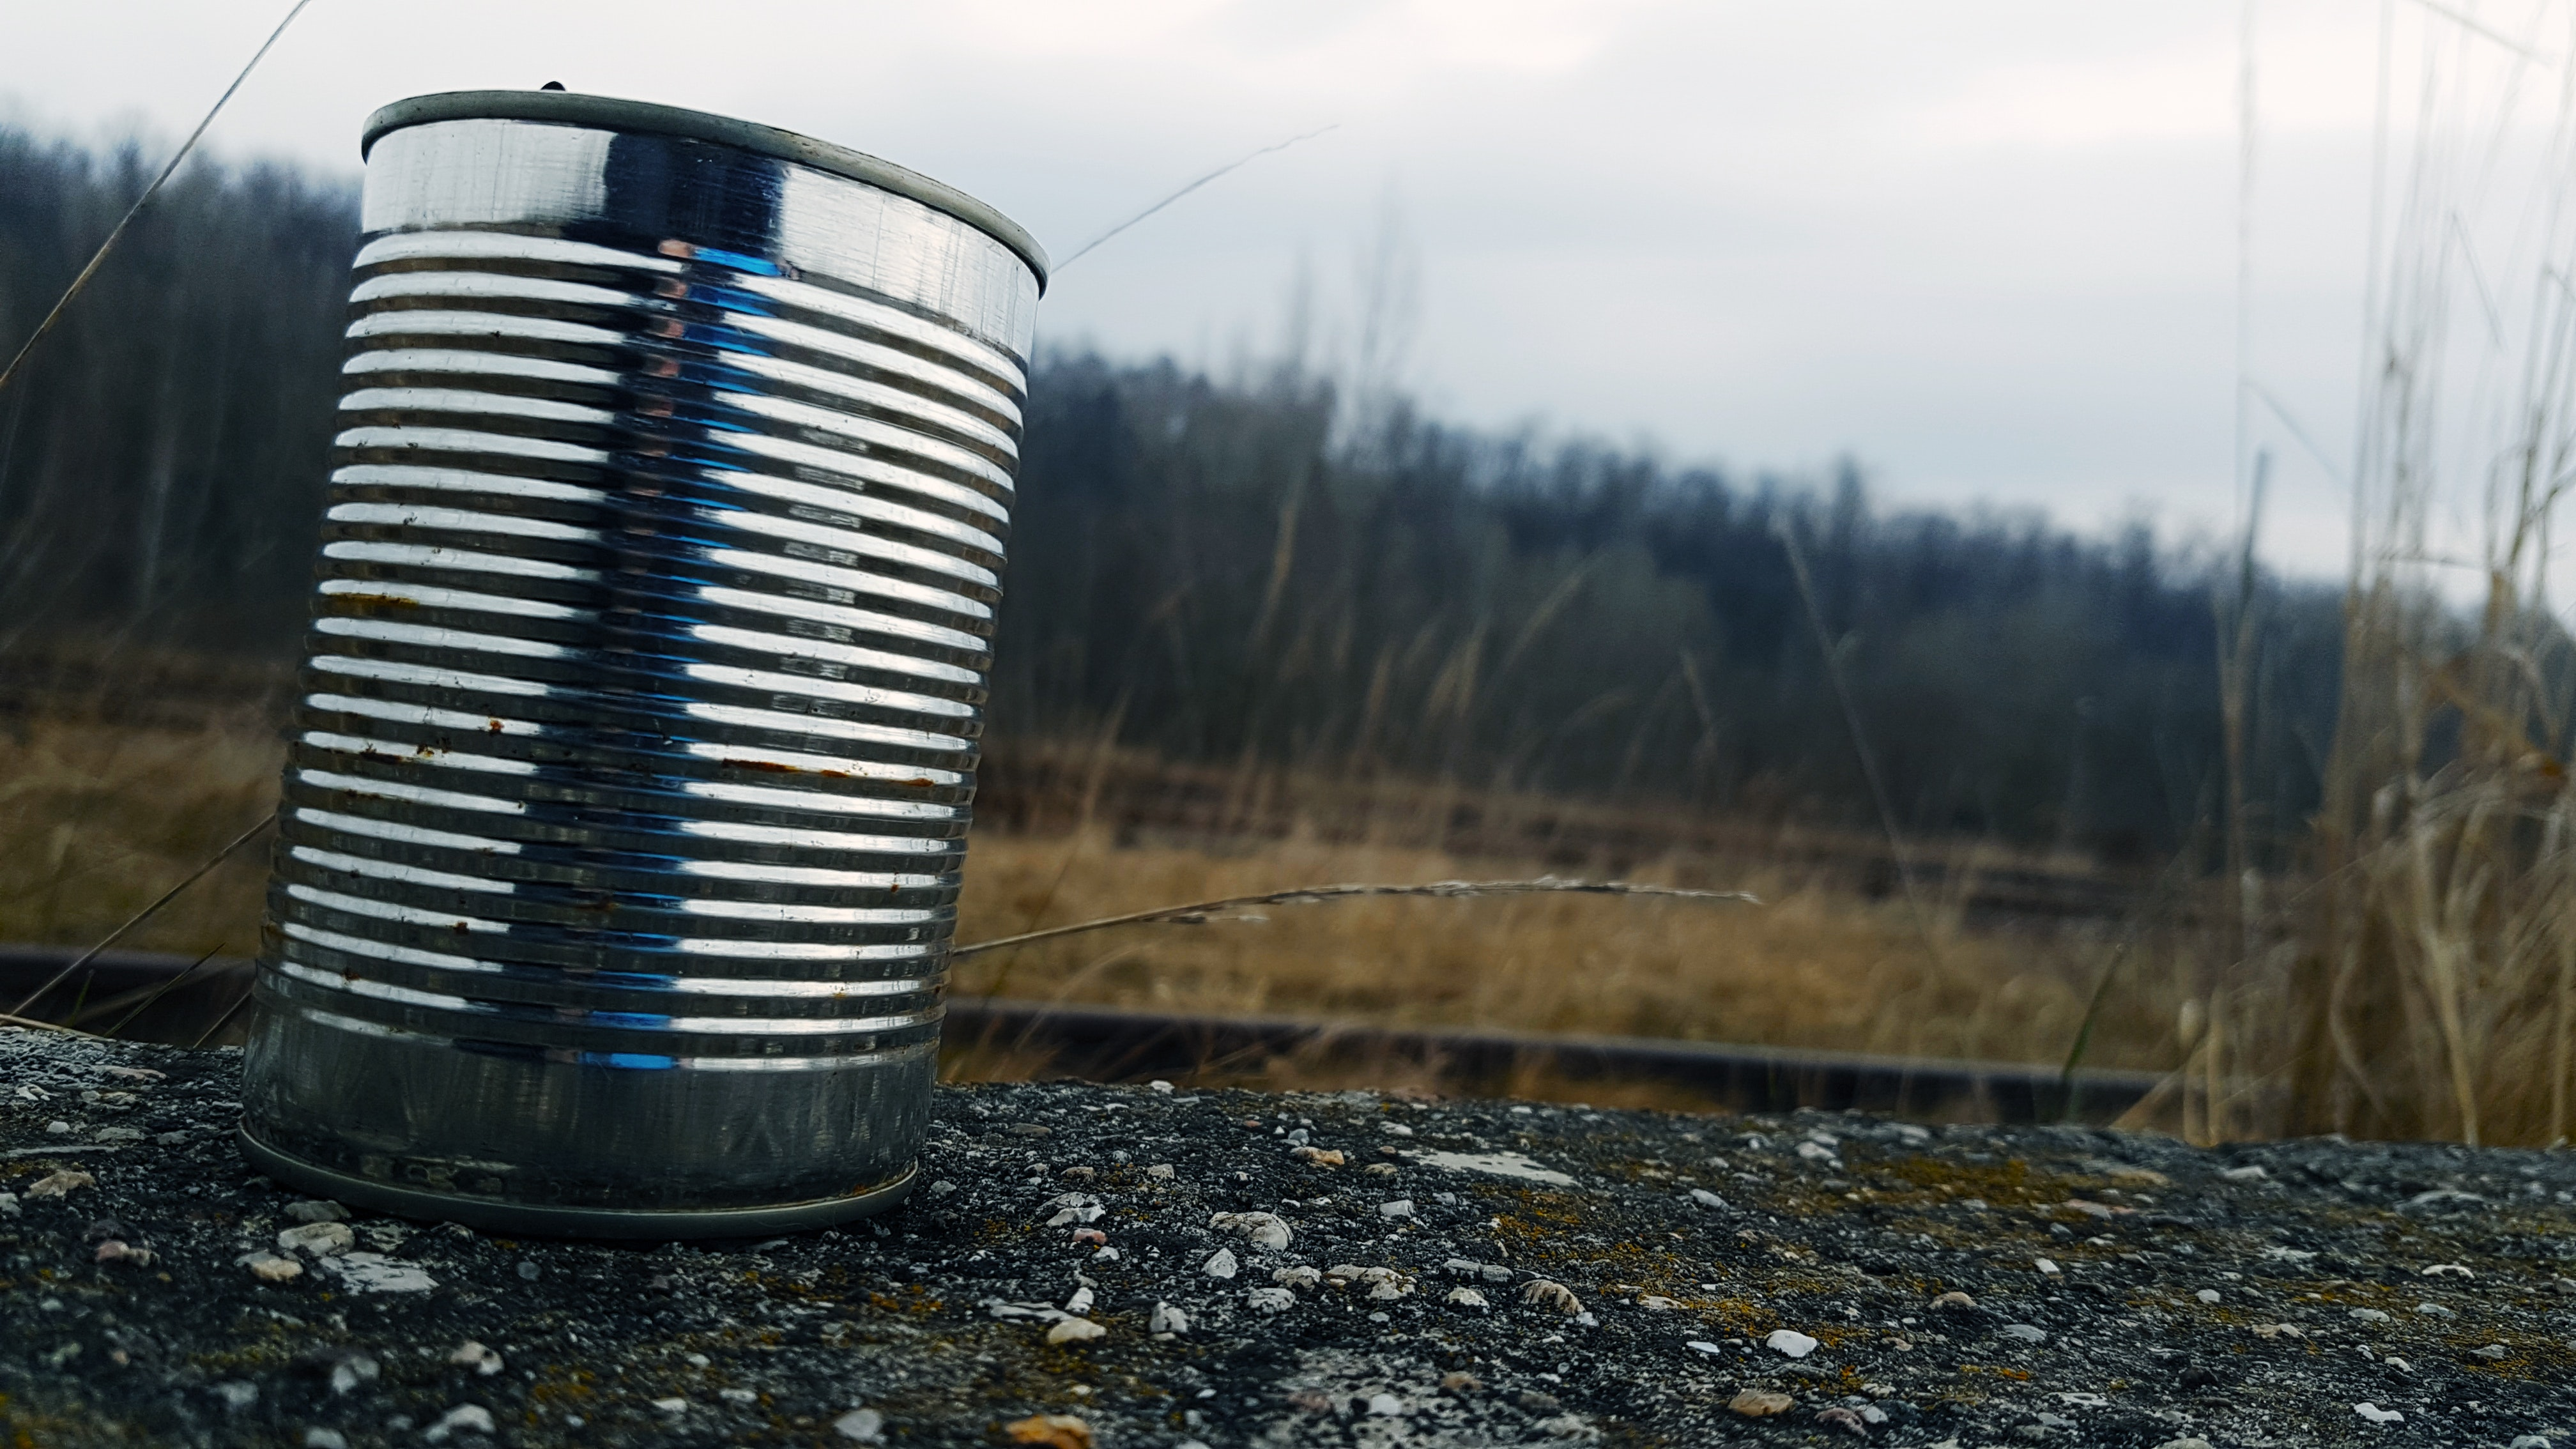 Drunk burglar in Bushypark made a weapon out of a sharpened tin can